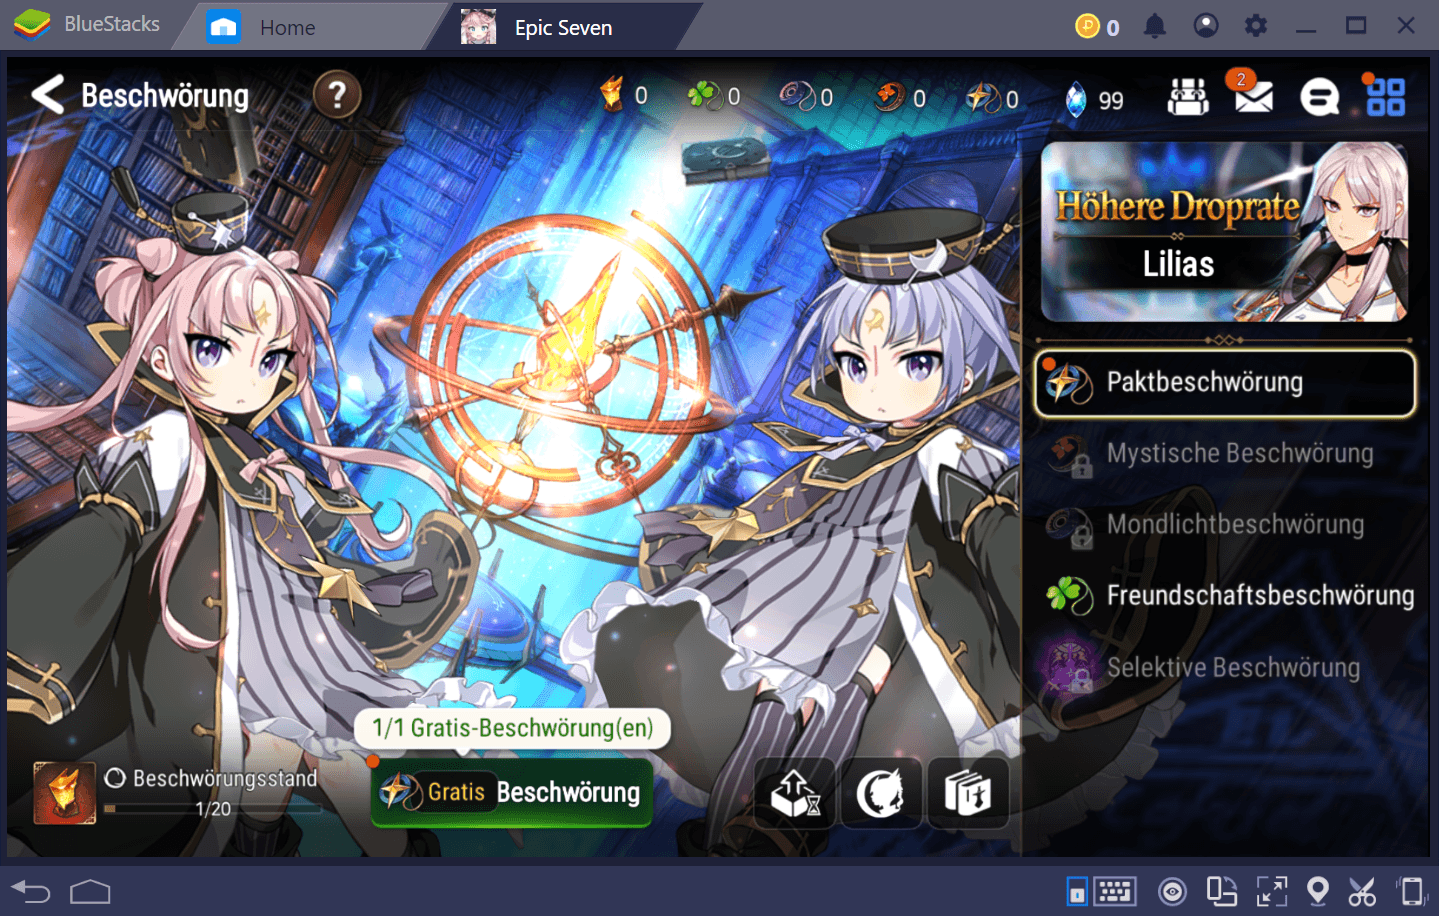 Epic Seven BlueStacks Installations-Guide